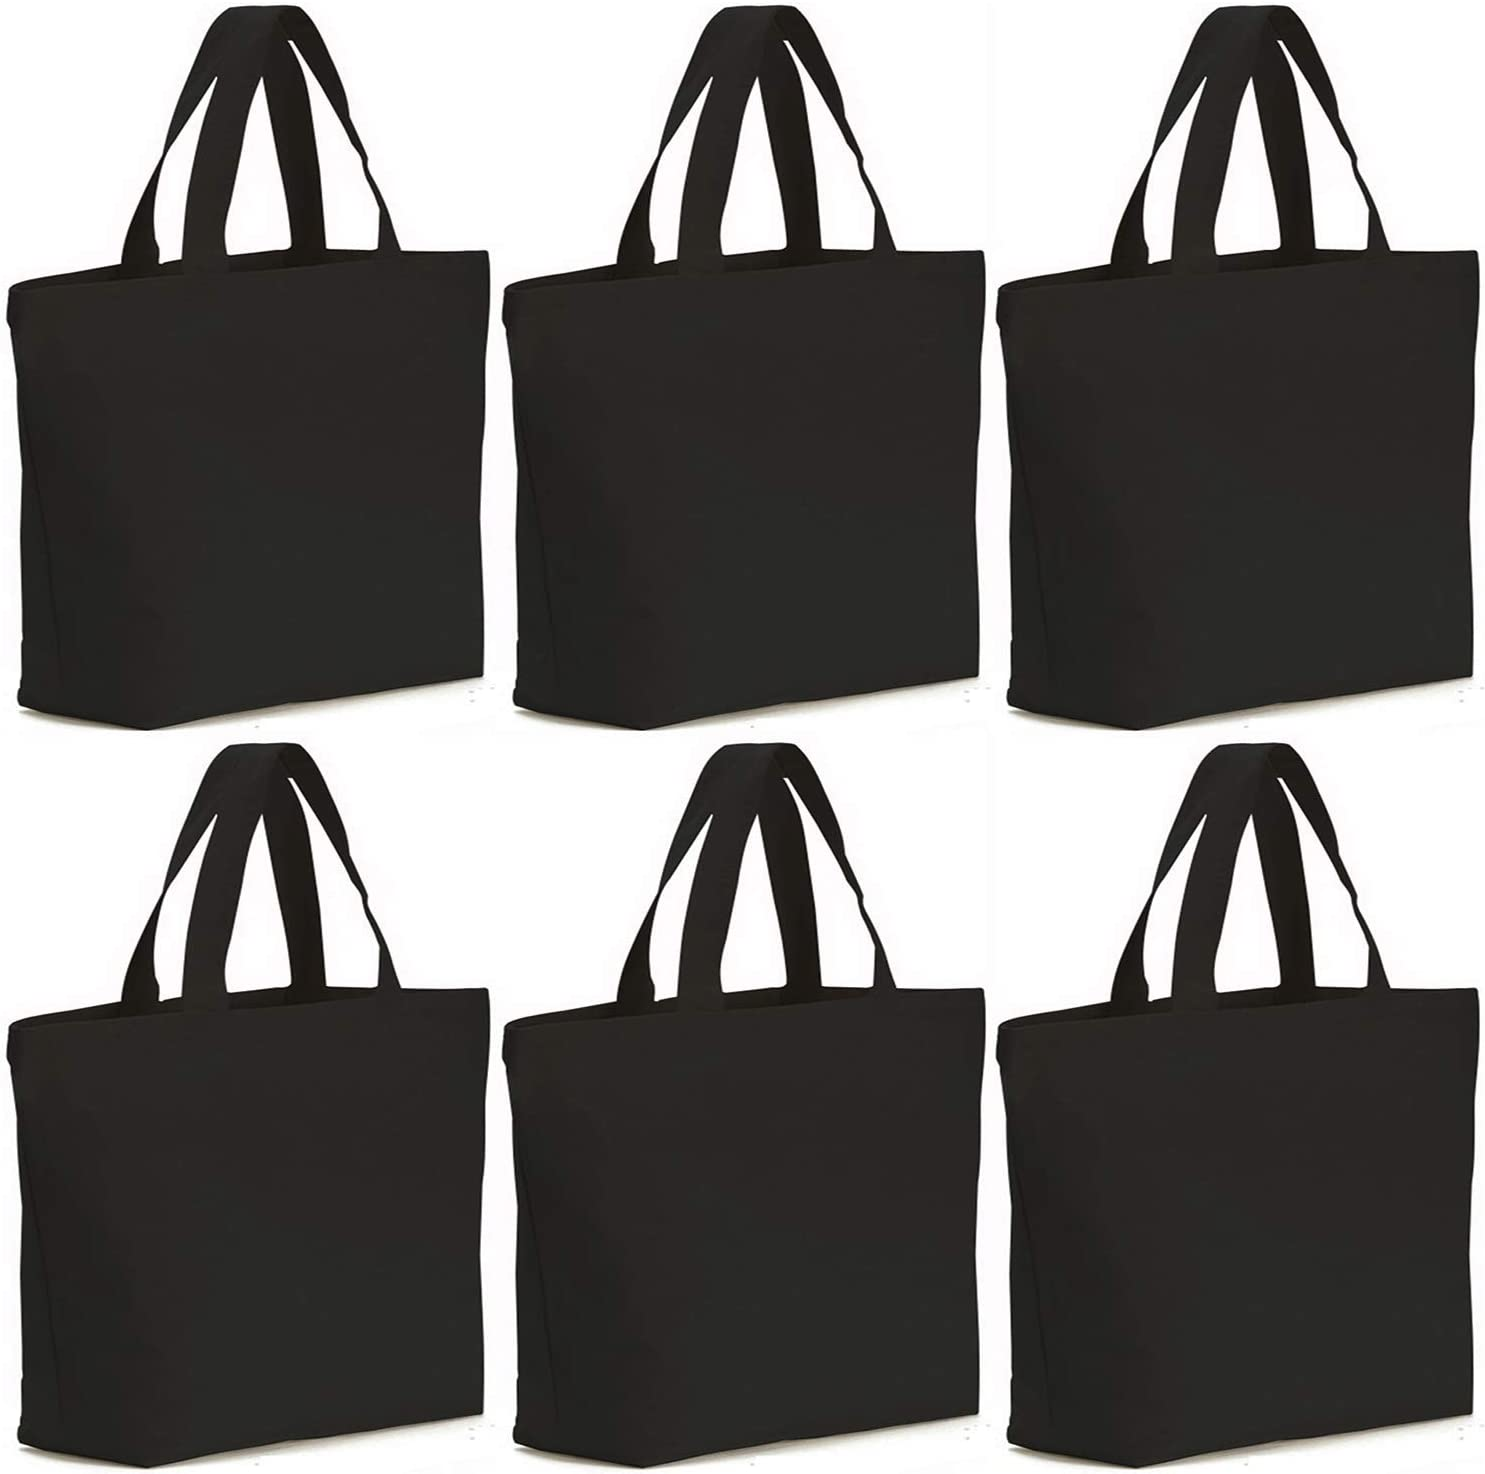 Axe Sickle 6PCS 12oz Canvas Tote Bag 19 X 18 X 5 inch Bottom Gusset Tote Shopping Bag, Washable Grocery Tote Bag, Craft Canvas Bag, Black.